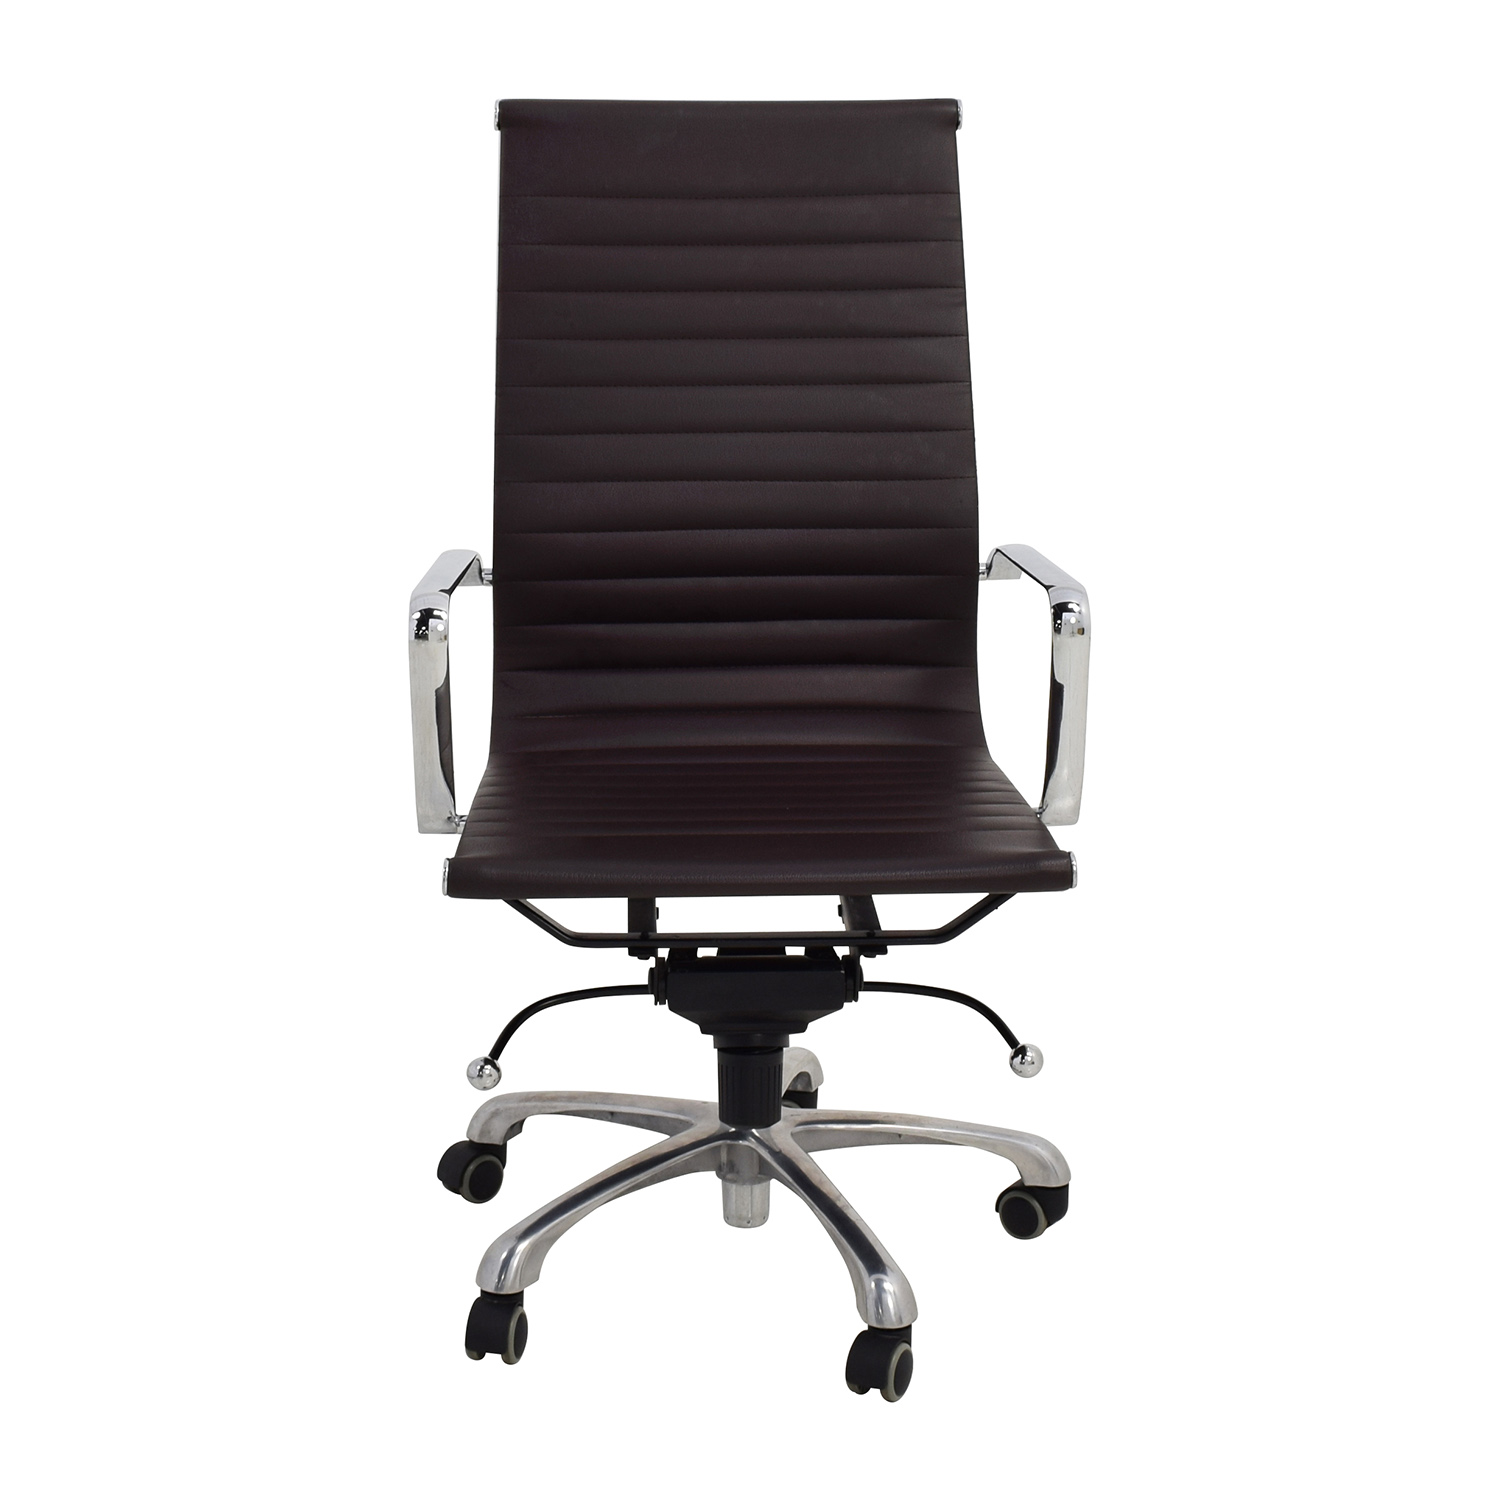 64% OFF Vitra Vitra Meda Black Chair Chairs